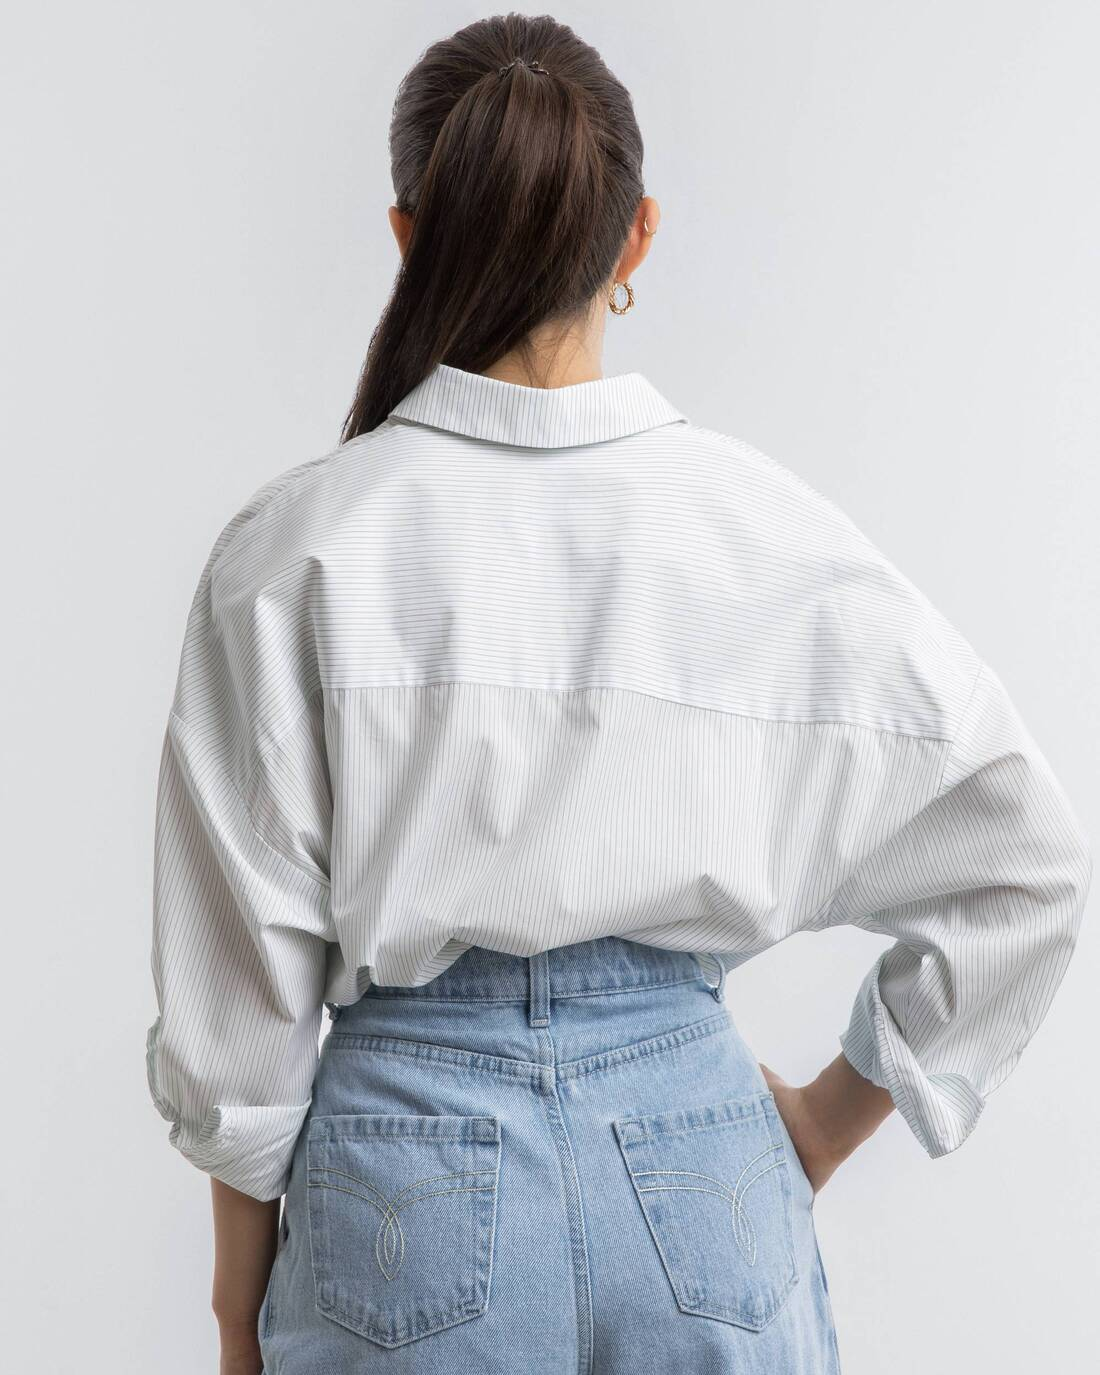 Oversize shirt with pockets